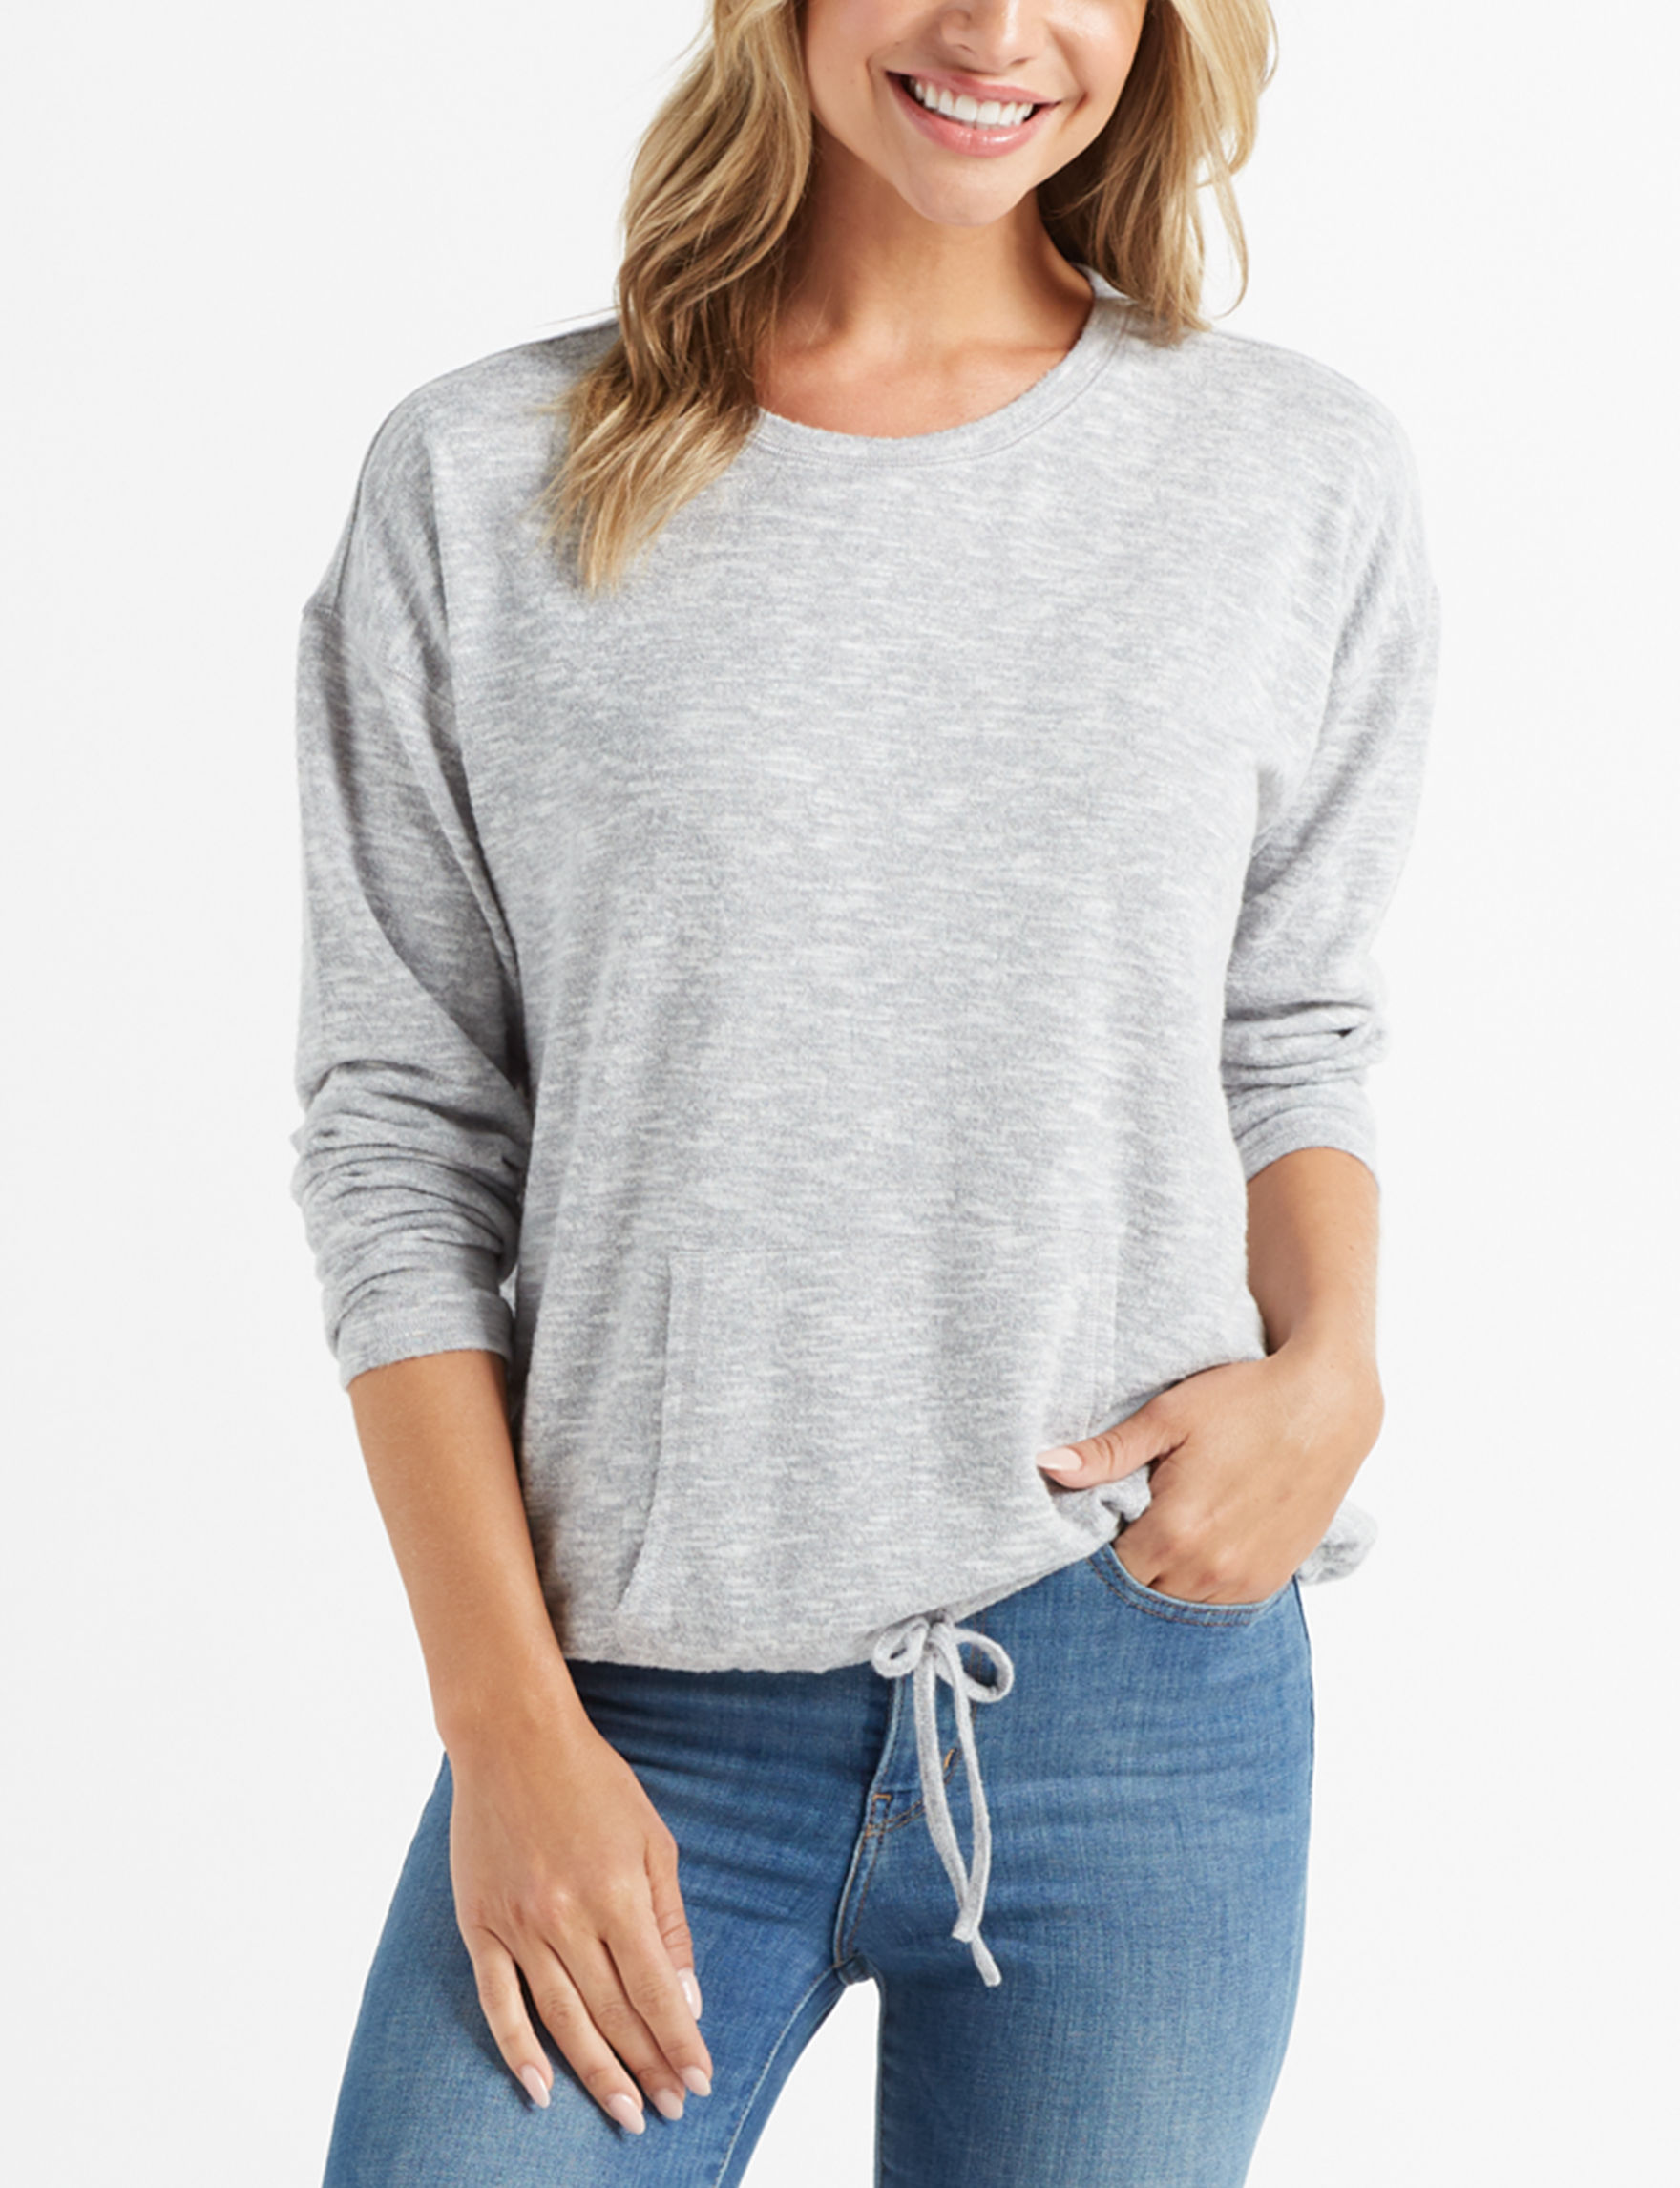 Signature Studio Heather Grey Shirts & Blouses